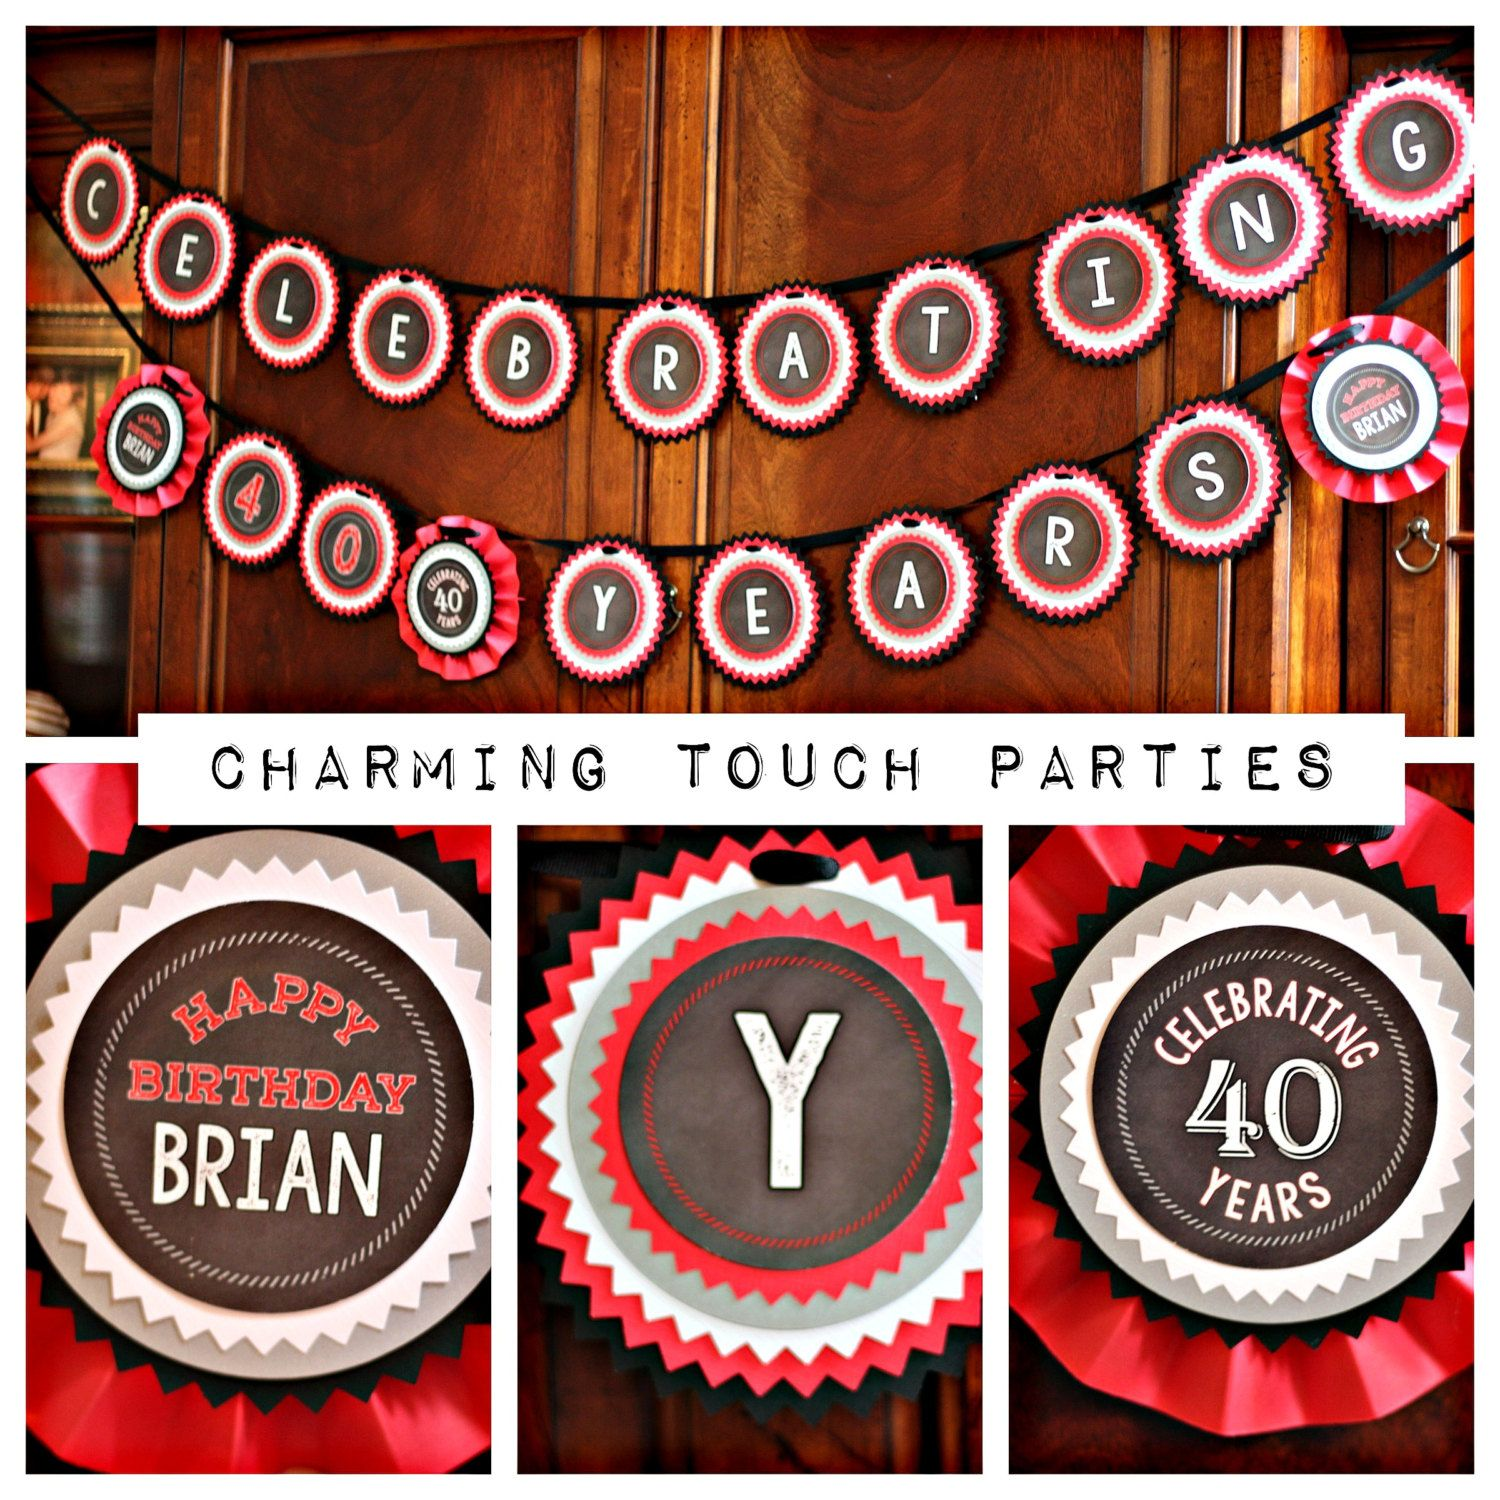 40th Birthday Party banner.  Celebrating 40 Years by Charming Touch Parties.  Black / Red / Grey / Chalkboard.  Customizable. by CharmingTouchParties on Etsy